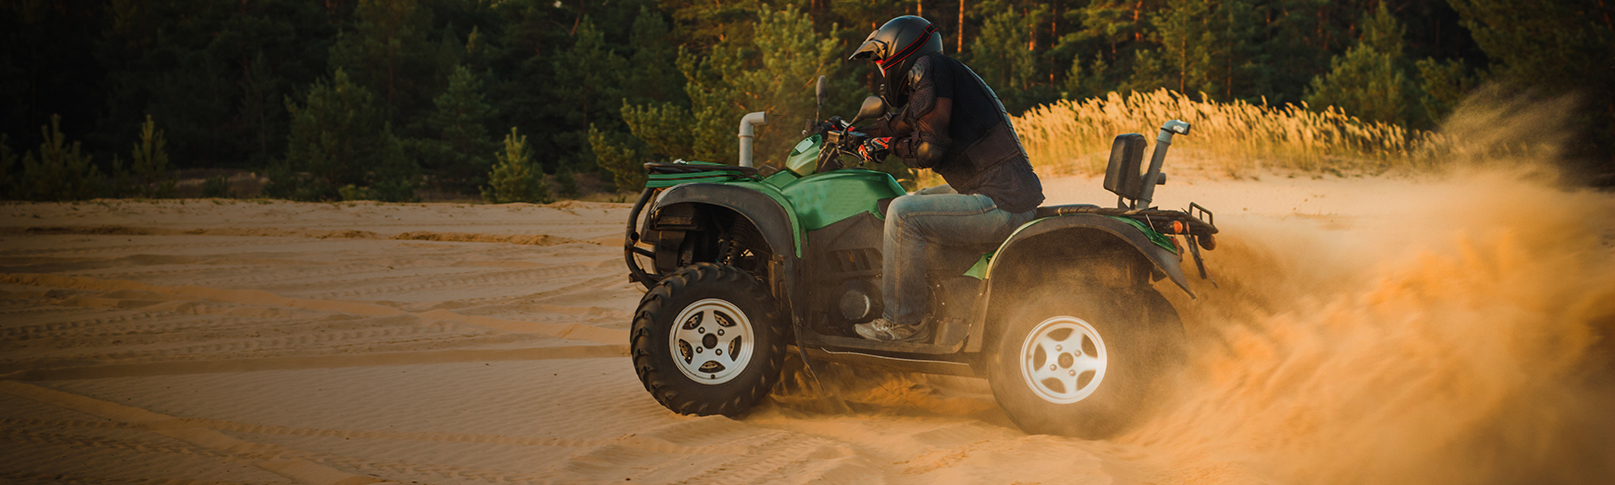 Man riding four wheeler in the sand